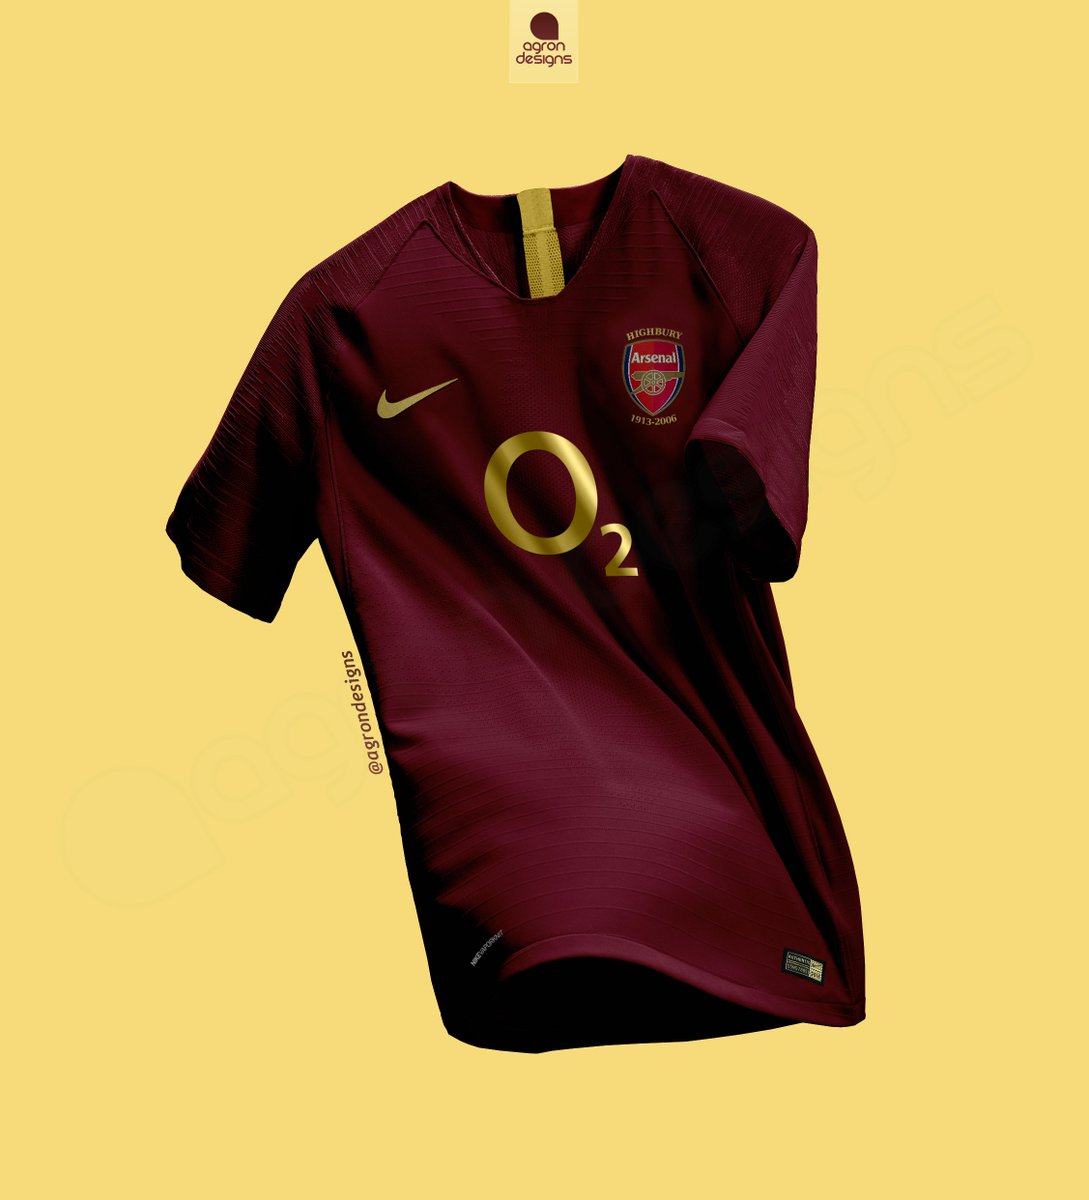 5aaf9f1cdd7 Nike X Arsenal (Home Kit 2005-06 Remake ) #arsenal #kitdesign #highbury # design #kit #concept #gunners #footballkits #thegunners #northlondon  #london ...